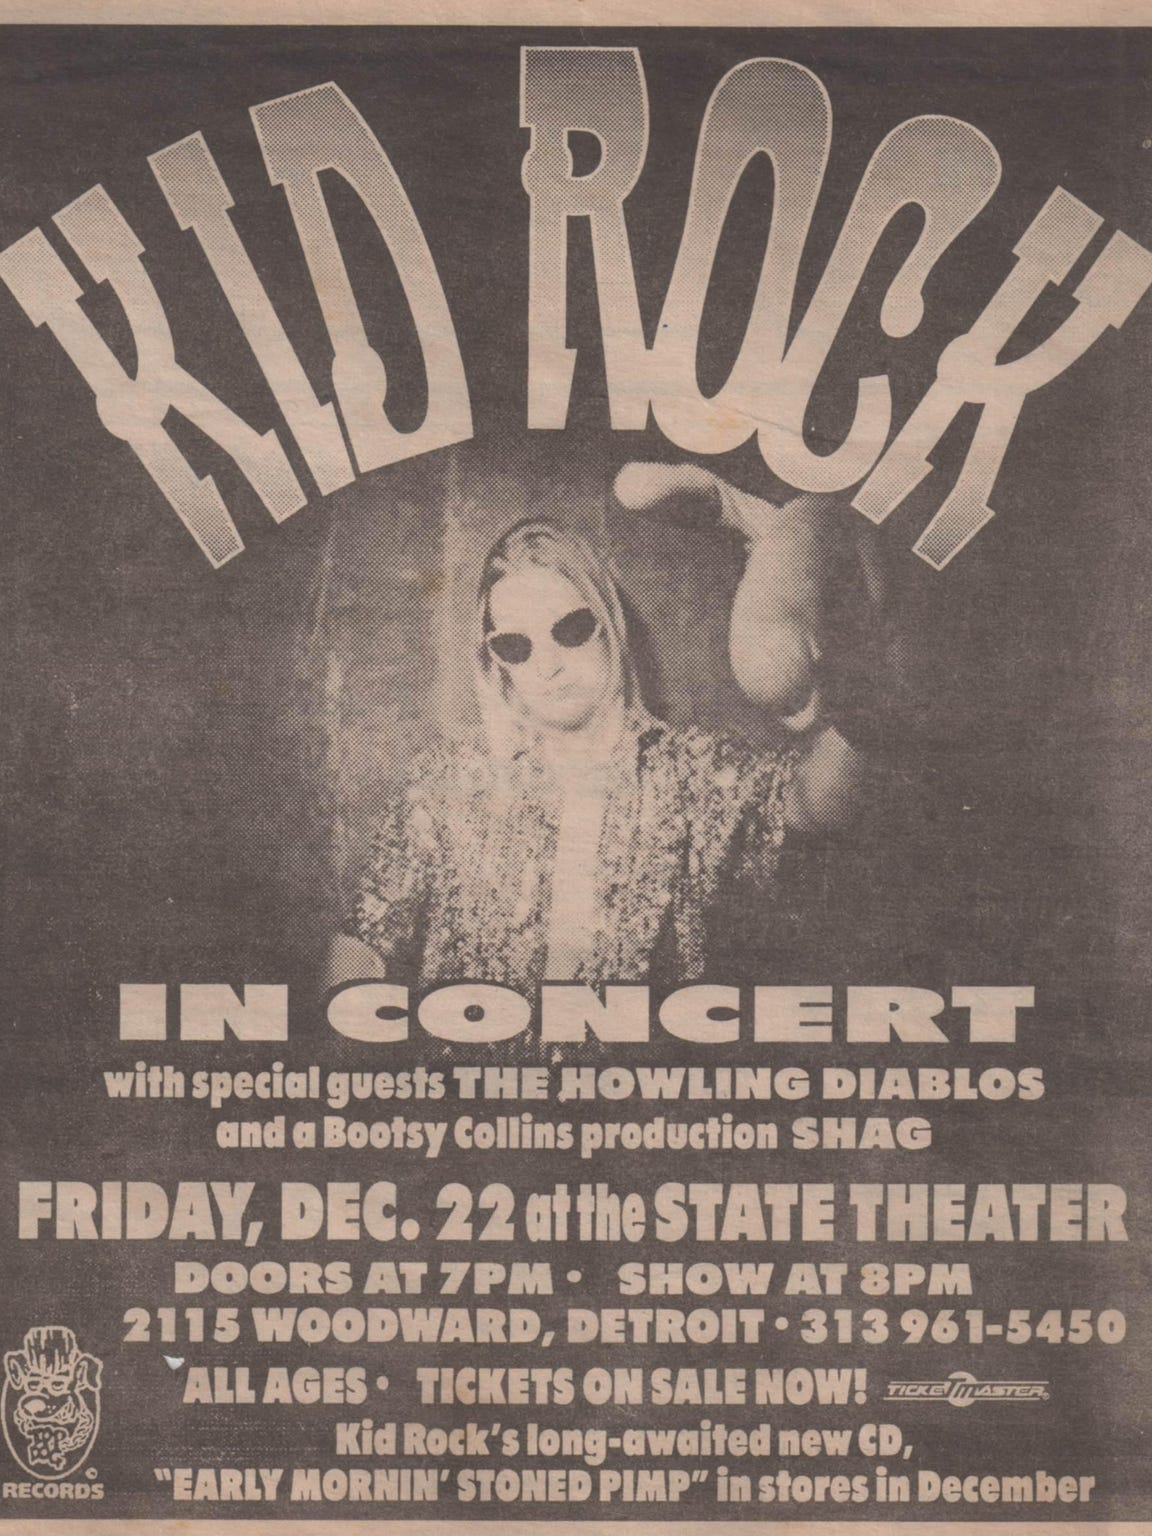 A 1996 concert poster for a Kid Rock show at the State